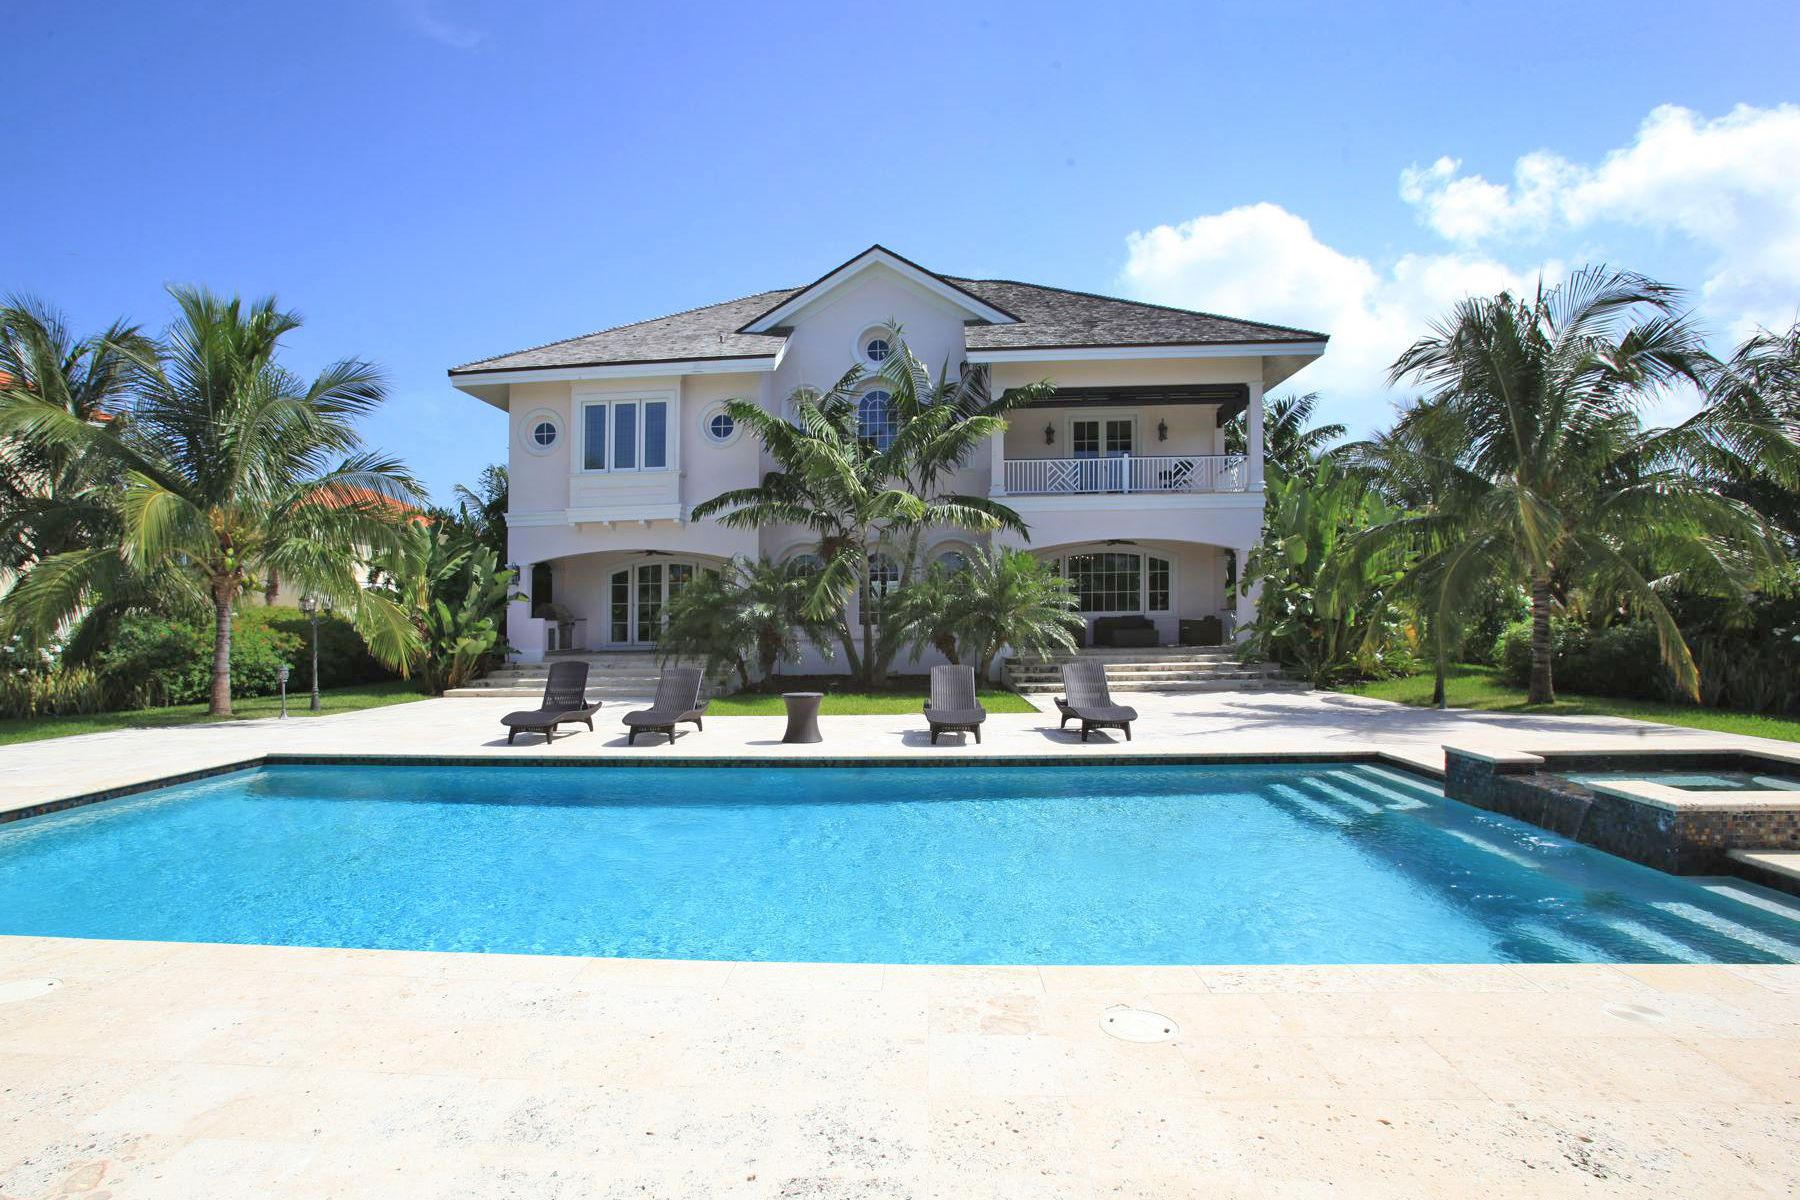 Single Family Home for Sale at Ocean Club Estates Ocean Club Estates, Paradise Island, Nassau And Paradise Island Bahamas